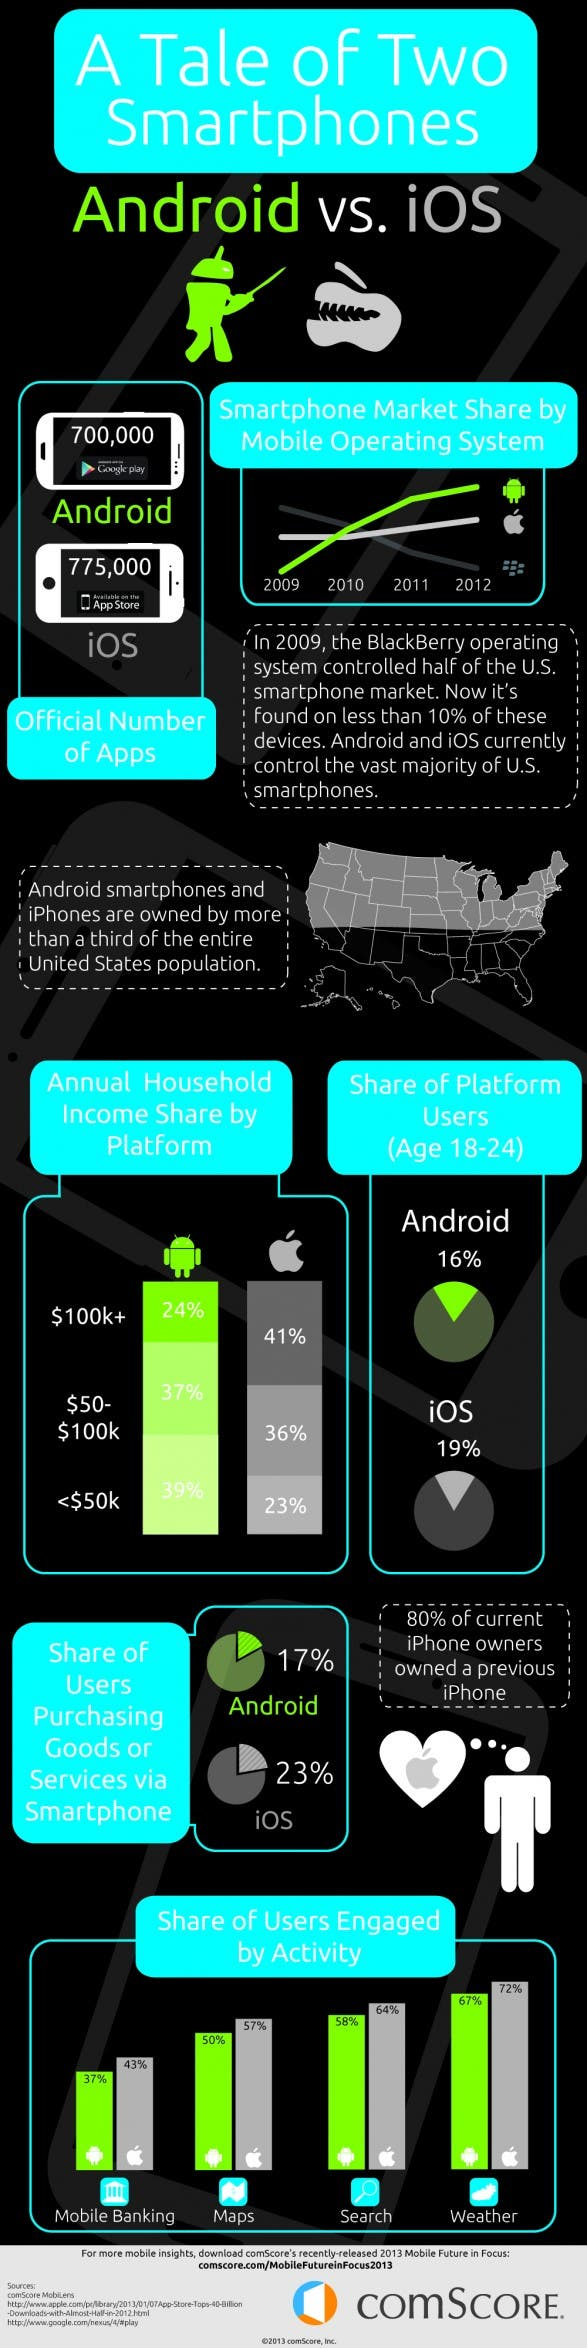 Android vs. iOS: User Differences Every Developer Should Know